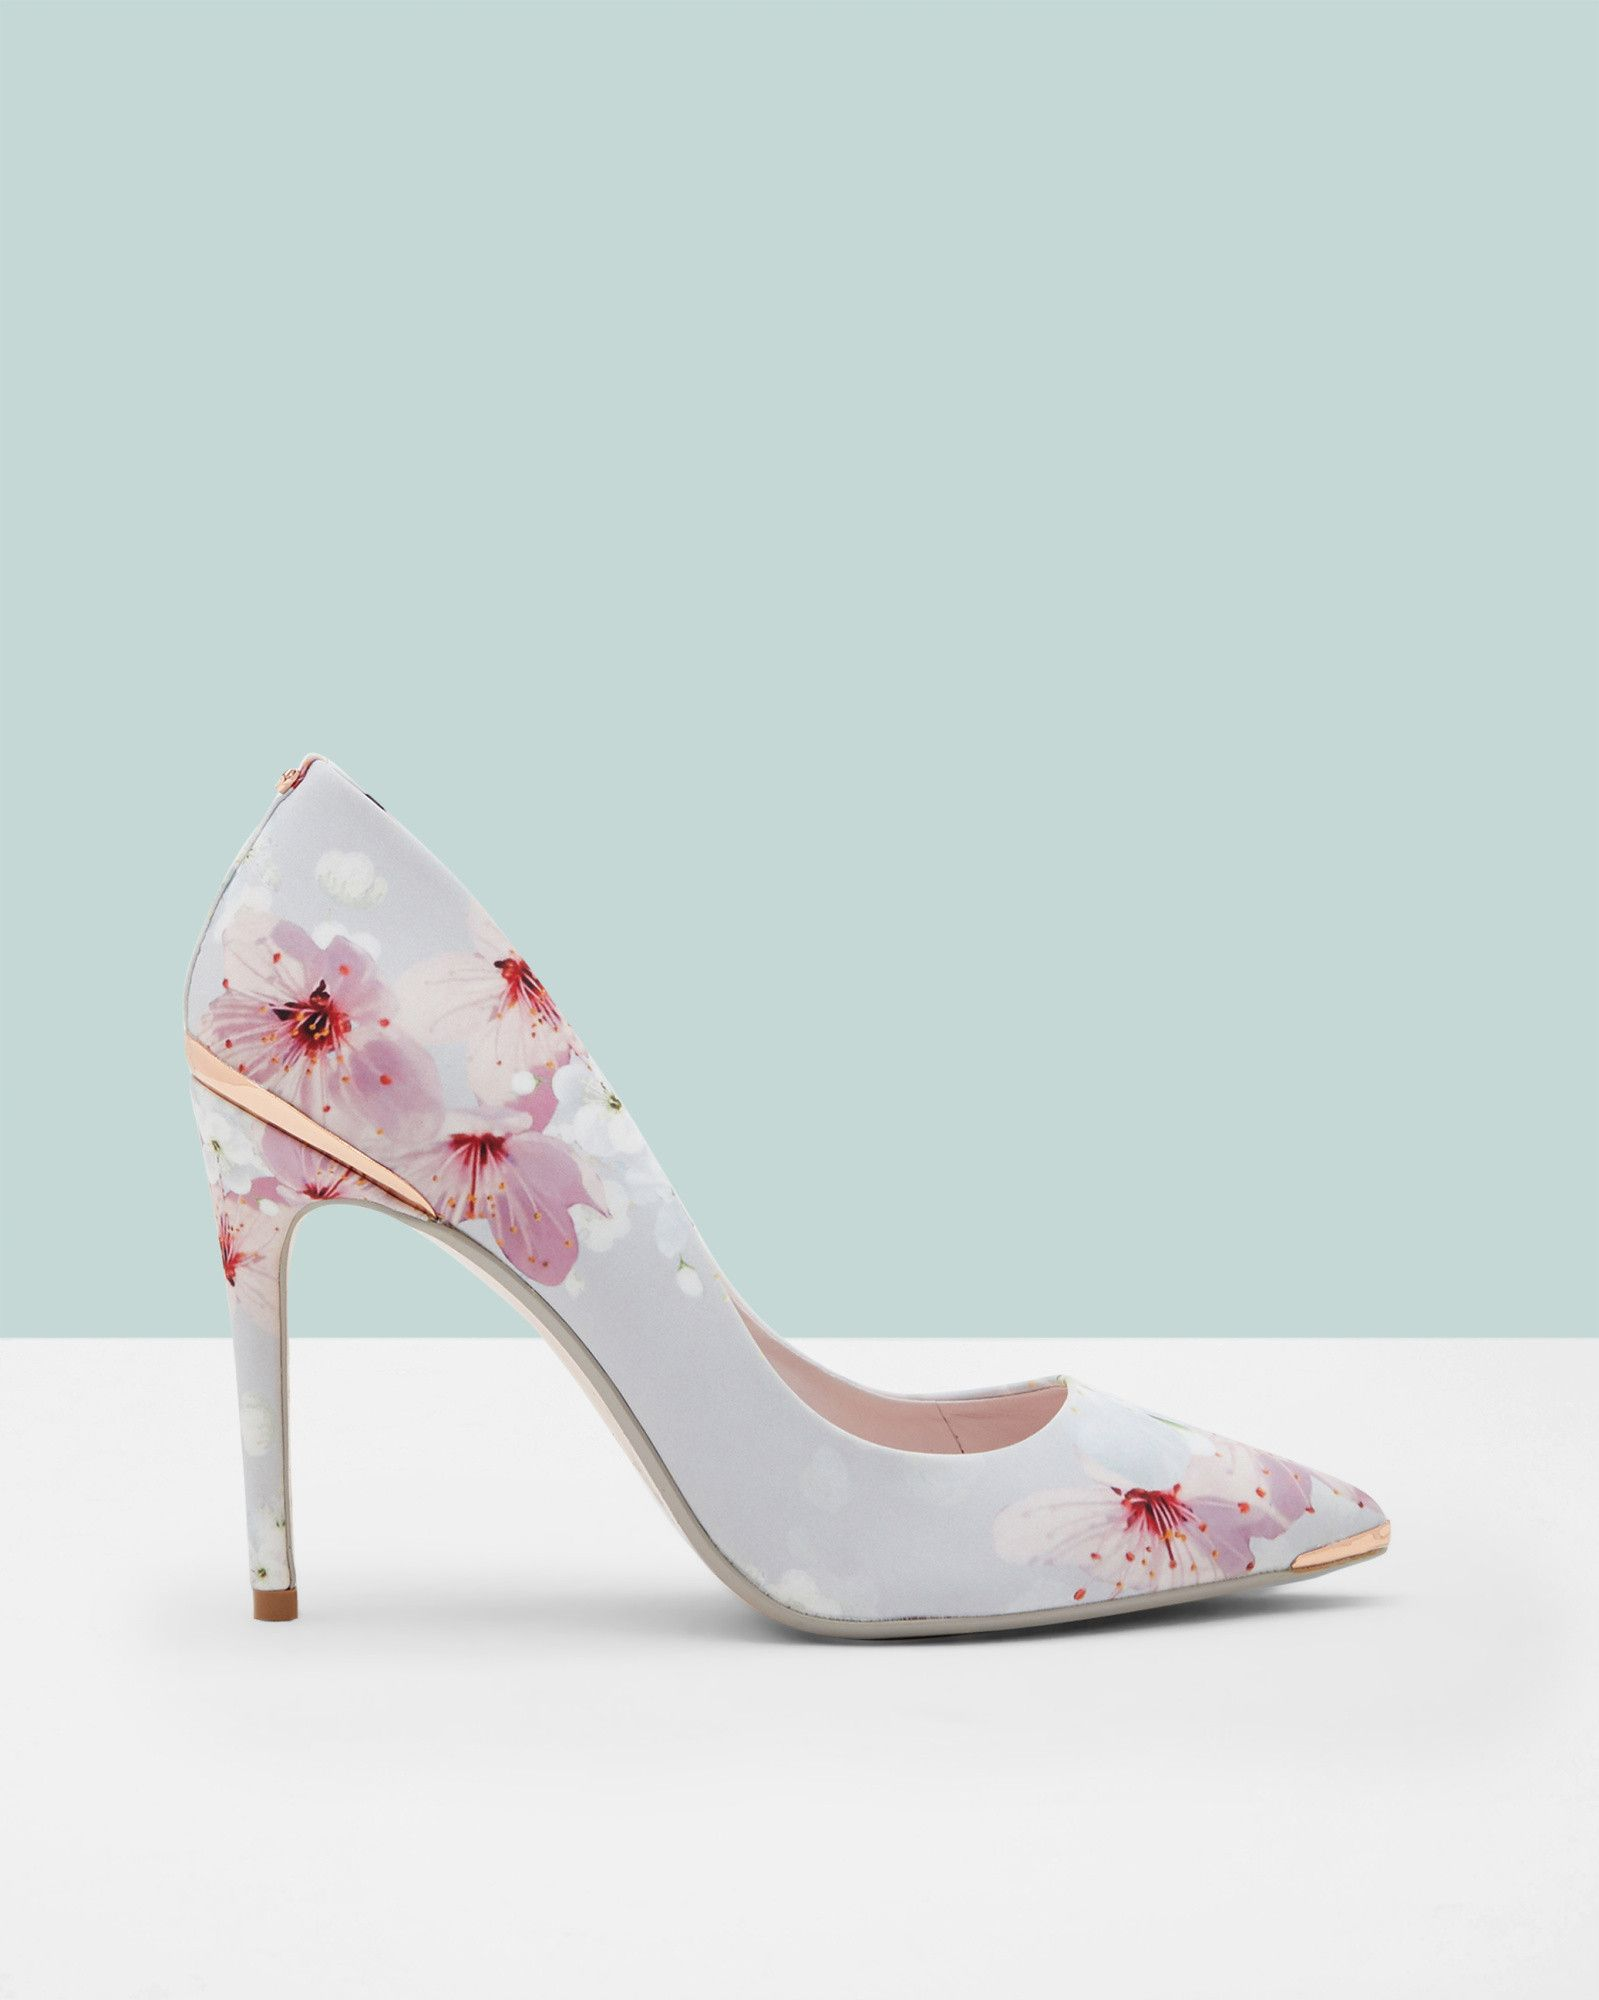 Printed pointed courts - Light Gray | Shoes | Ted Baker | Fashion ...